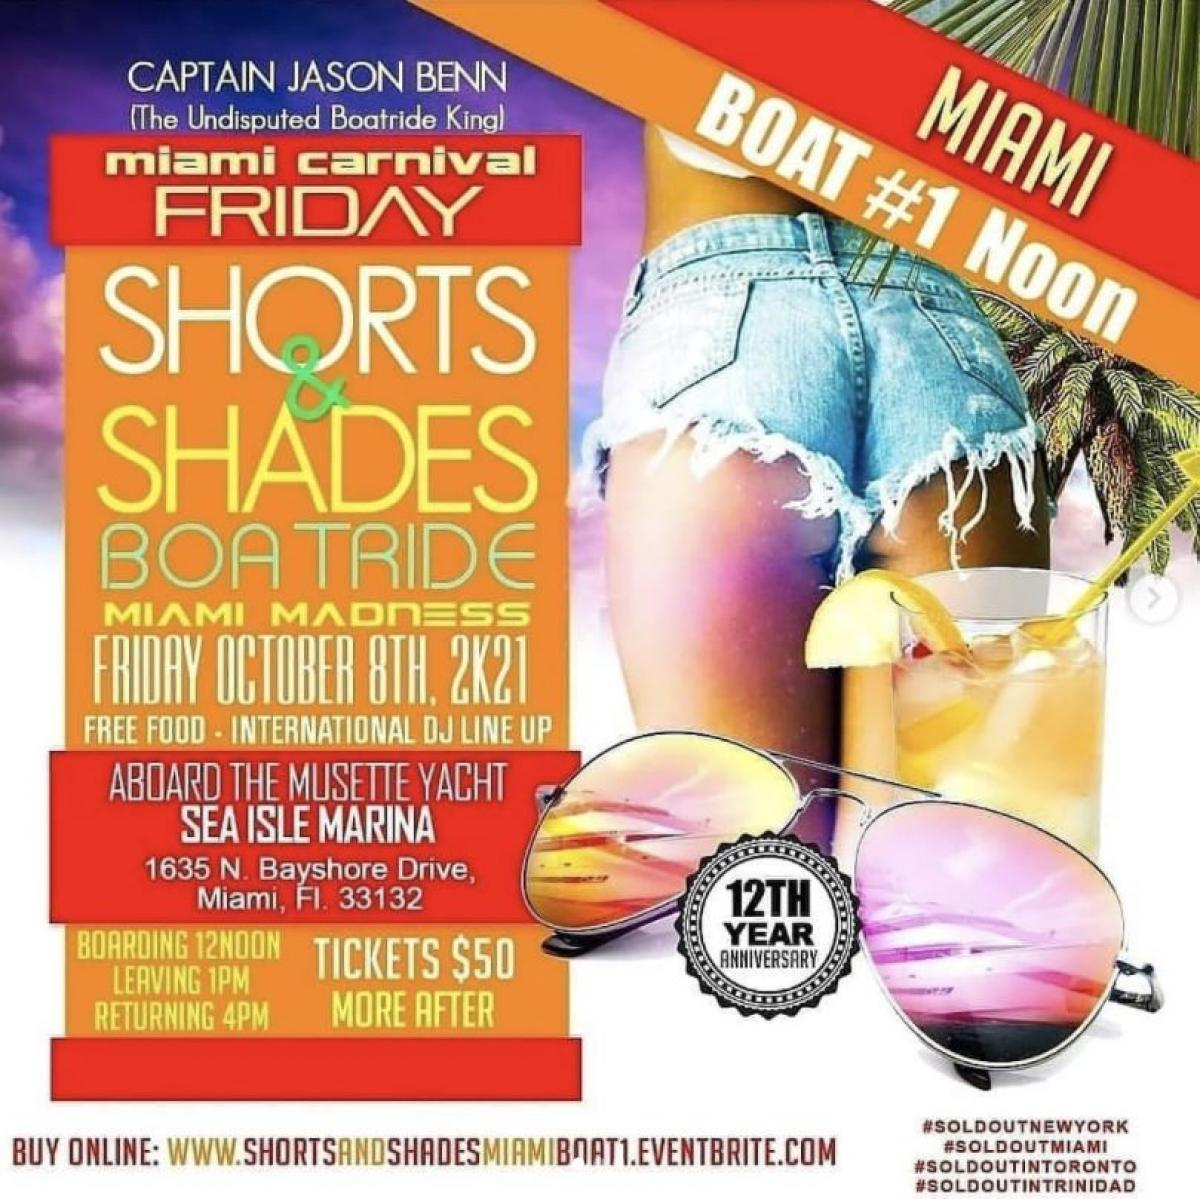 Shorts & Shades MIA Noon Boat flyer or graphic.